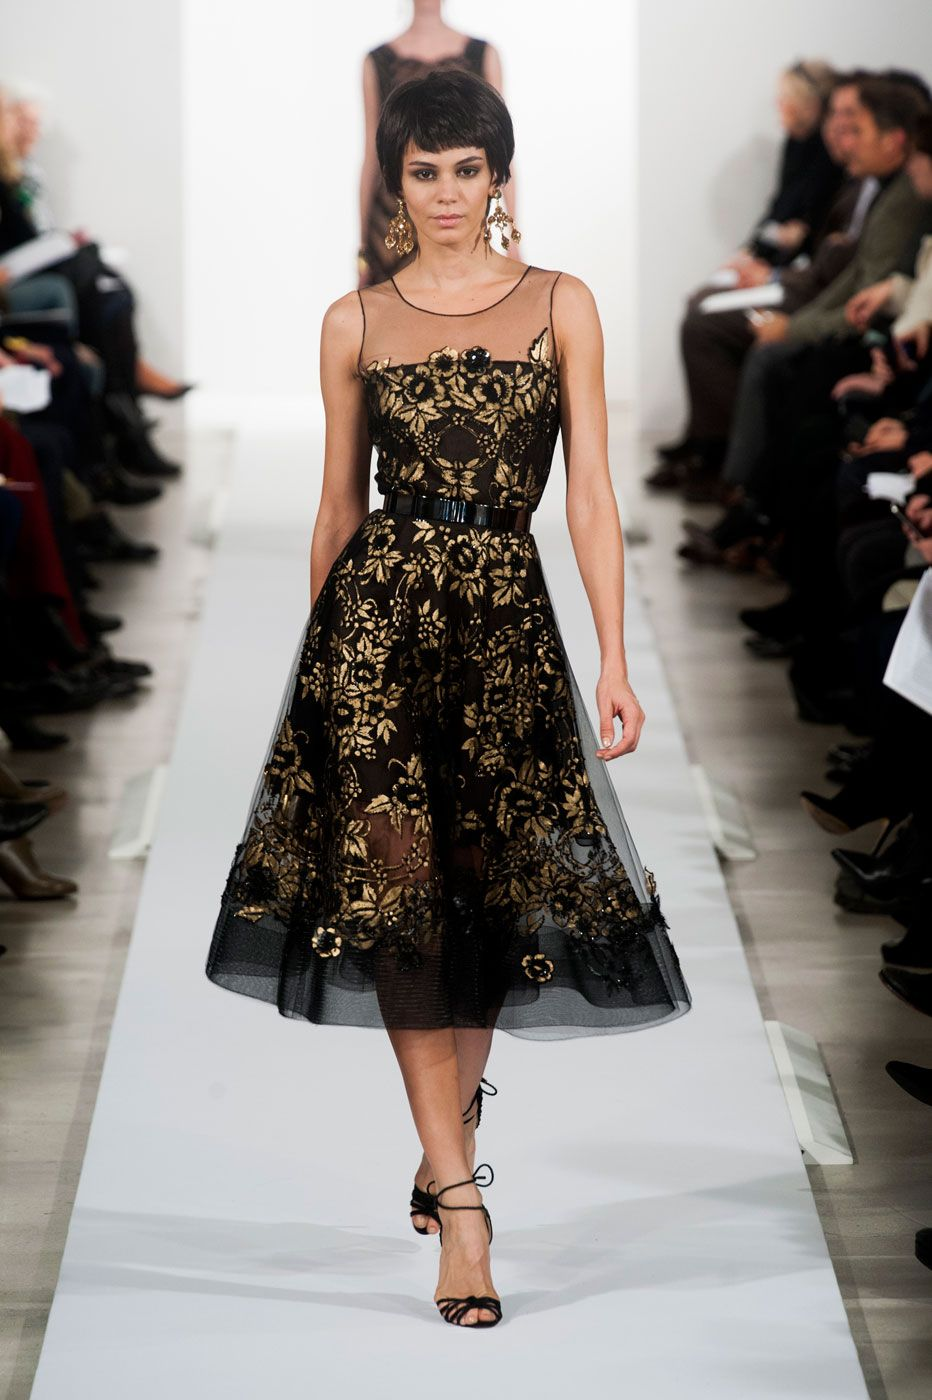 Oscar de la Renta Brings Old Hollywood Glamour: All theLooks